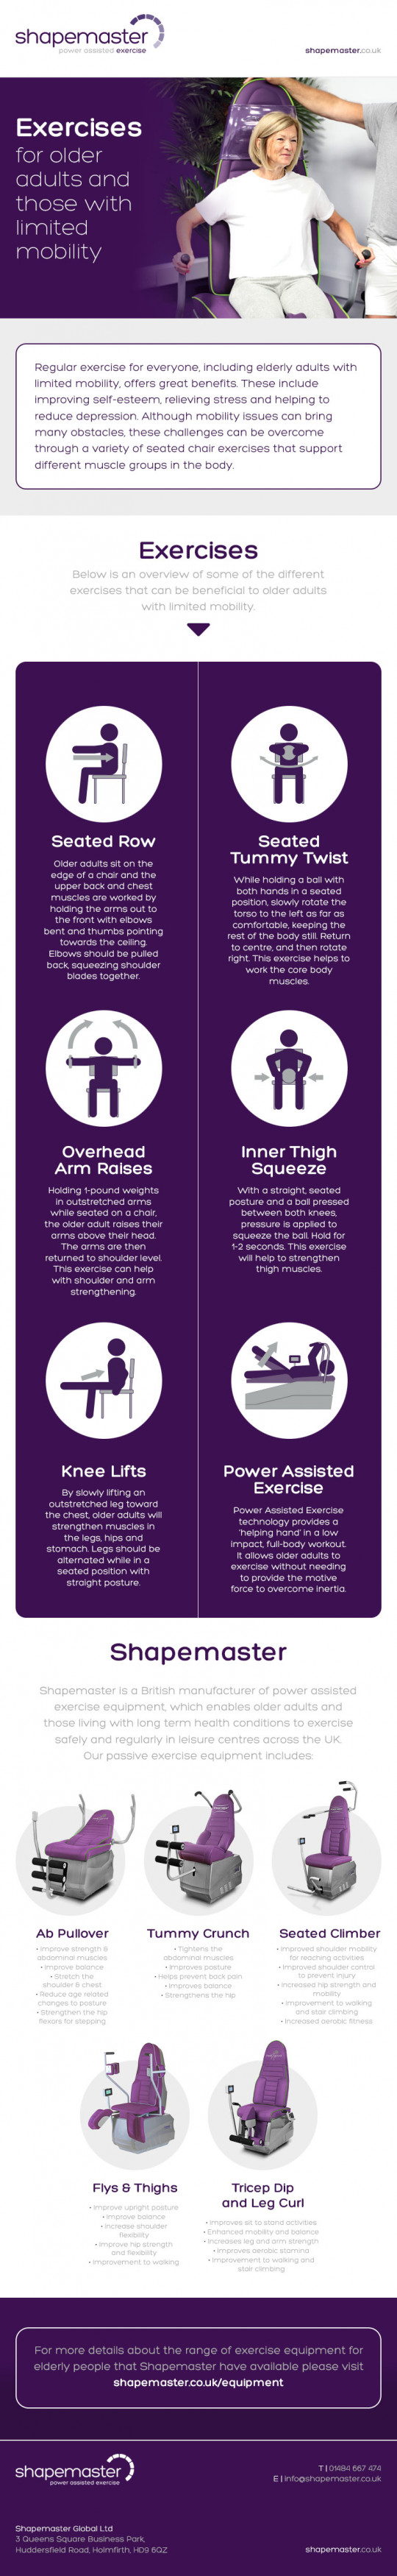 Exercises for Older Adults and Those with Limited Mobility